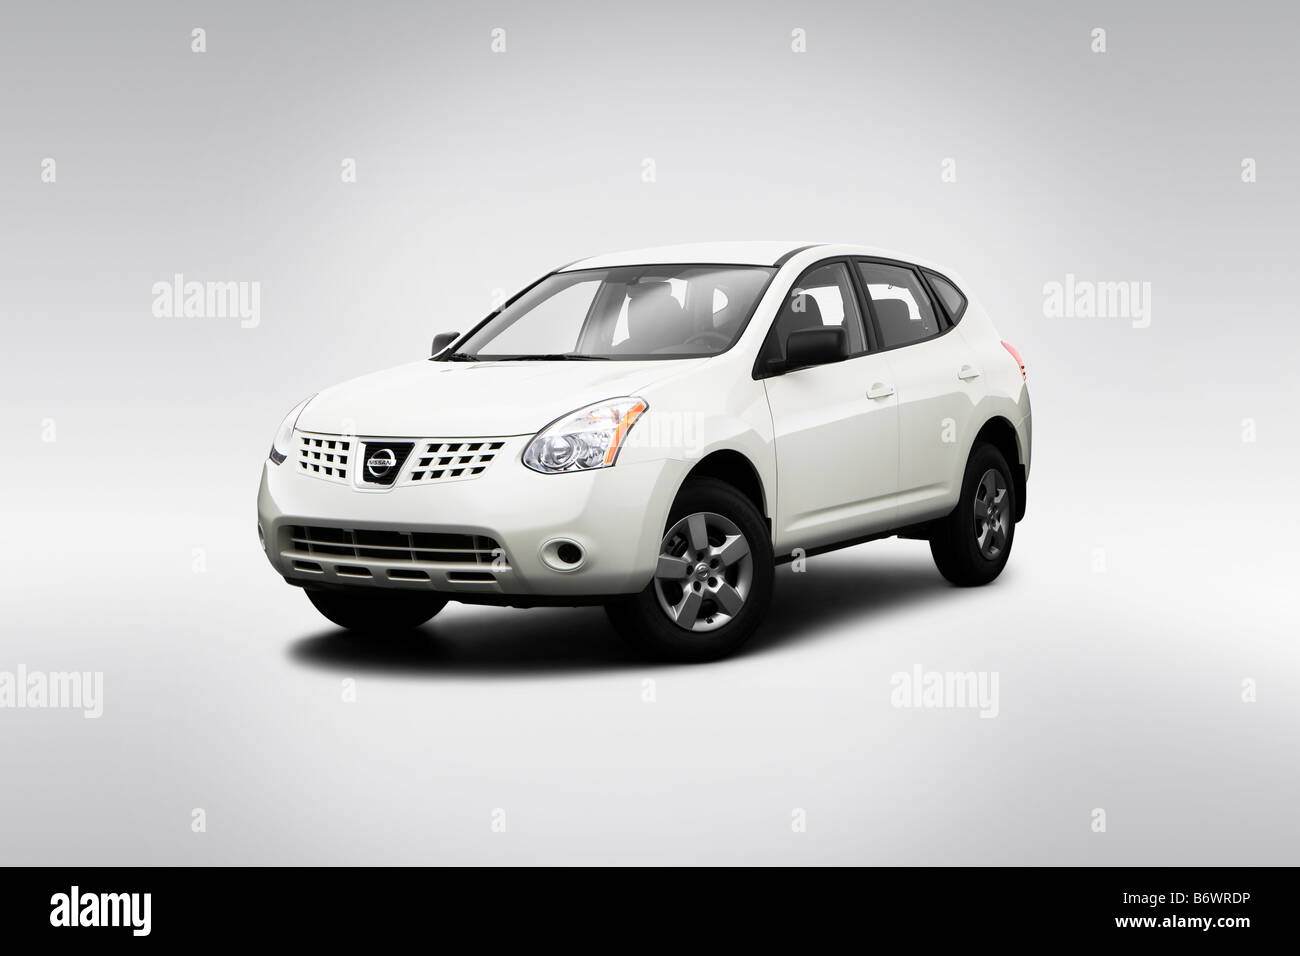 White Nissan High Resolution Stock Photography And Images Alamy